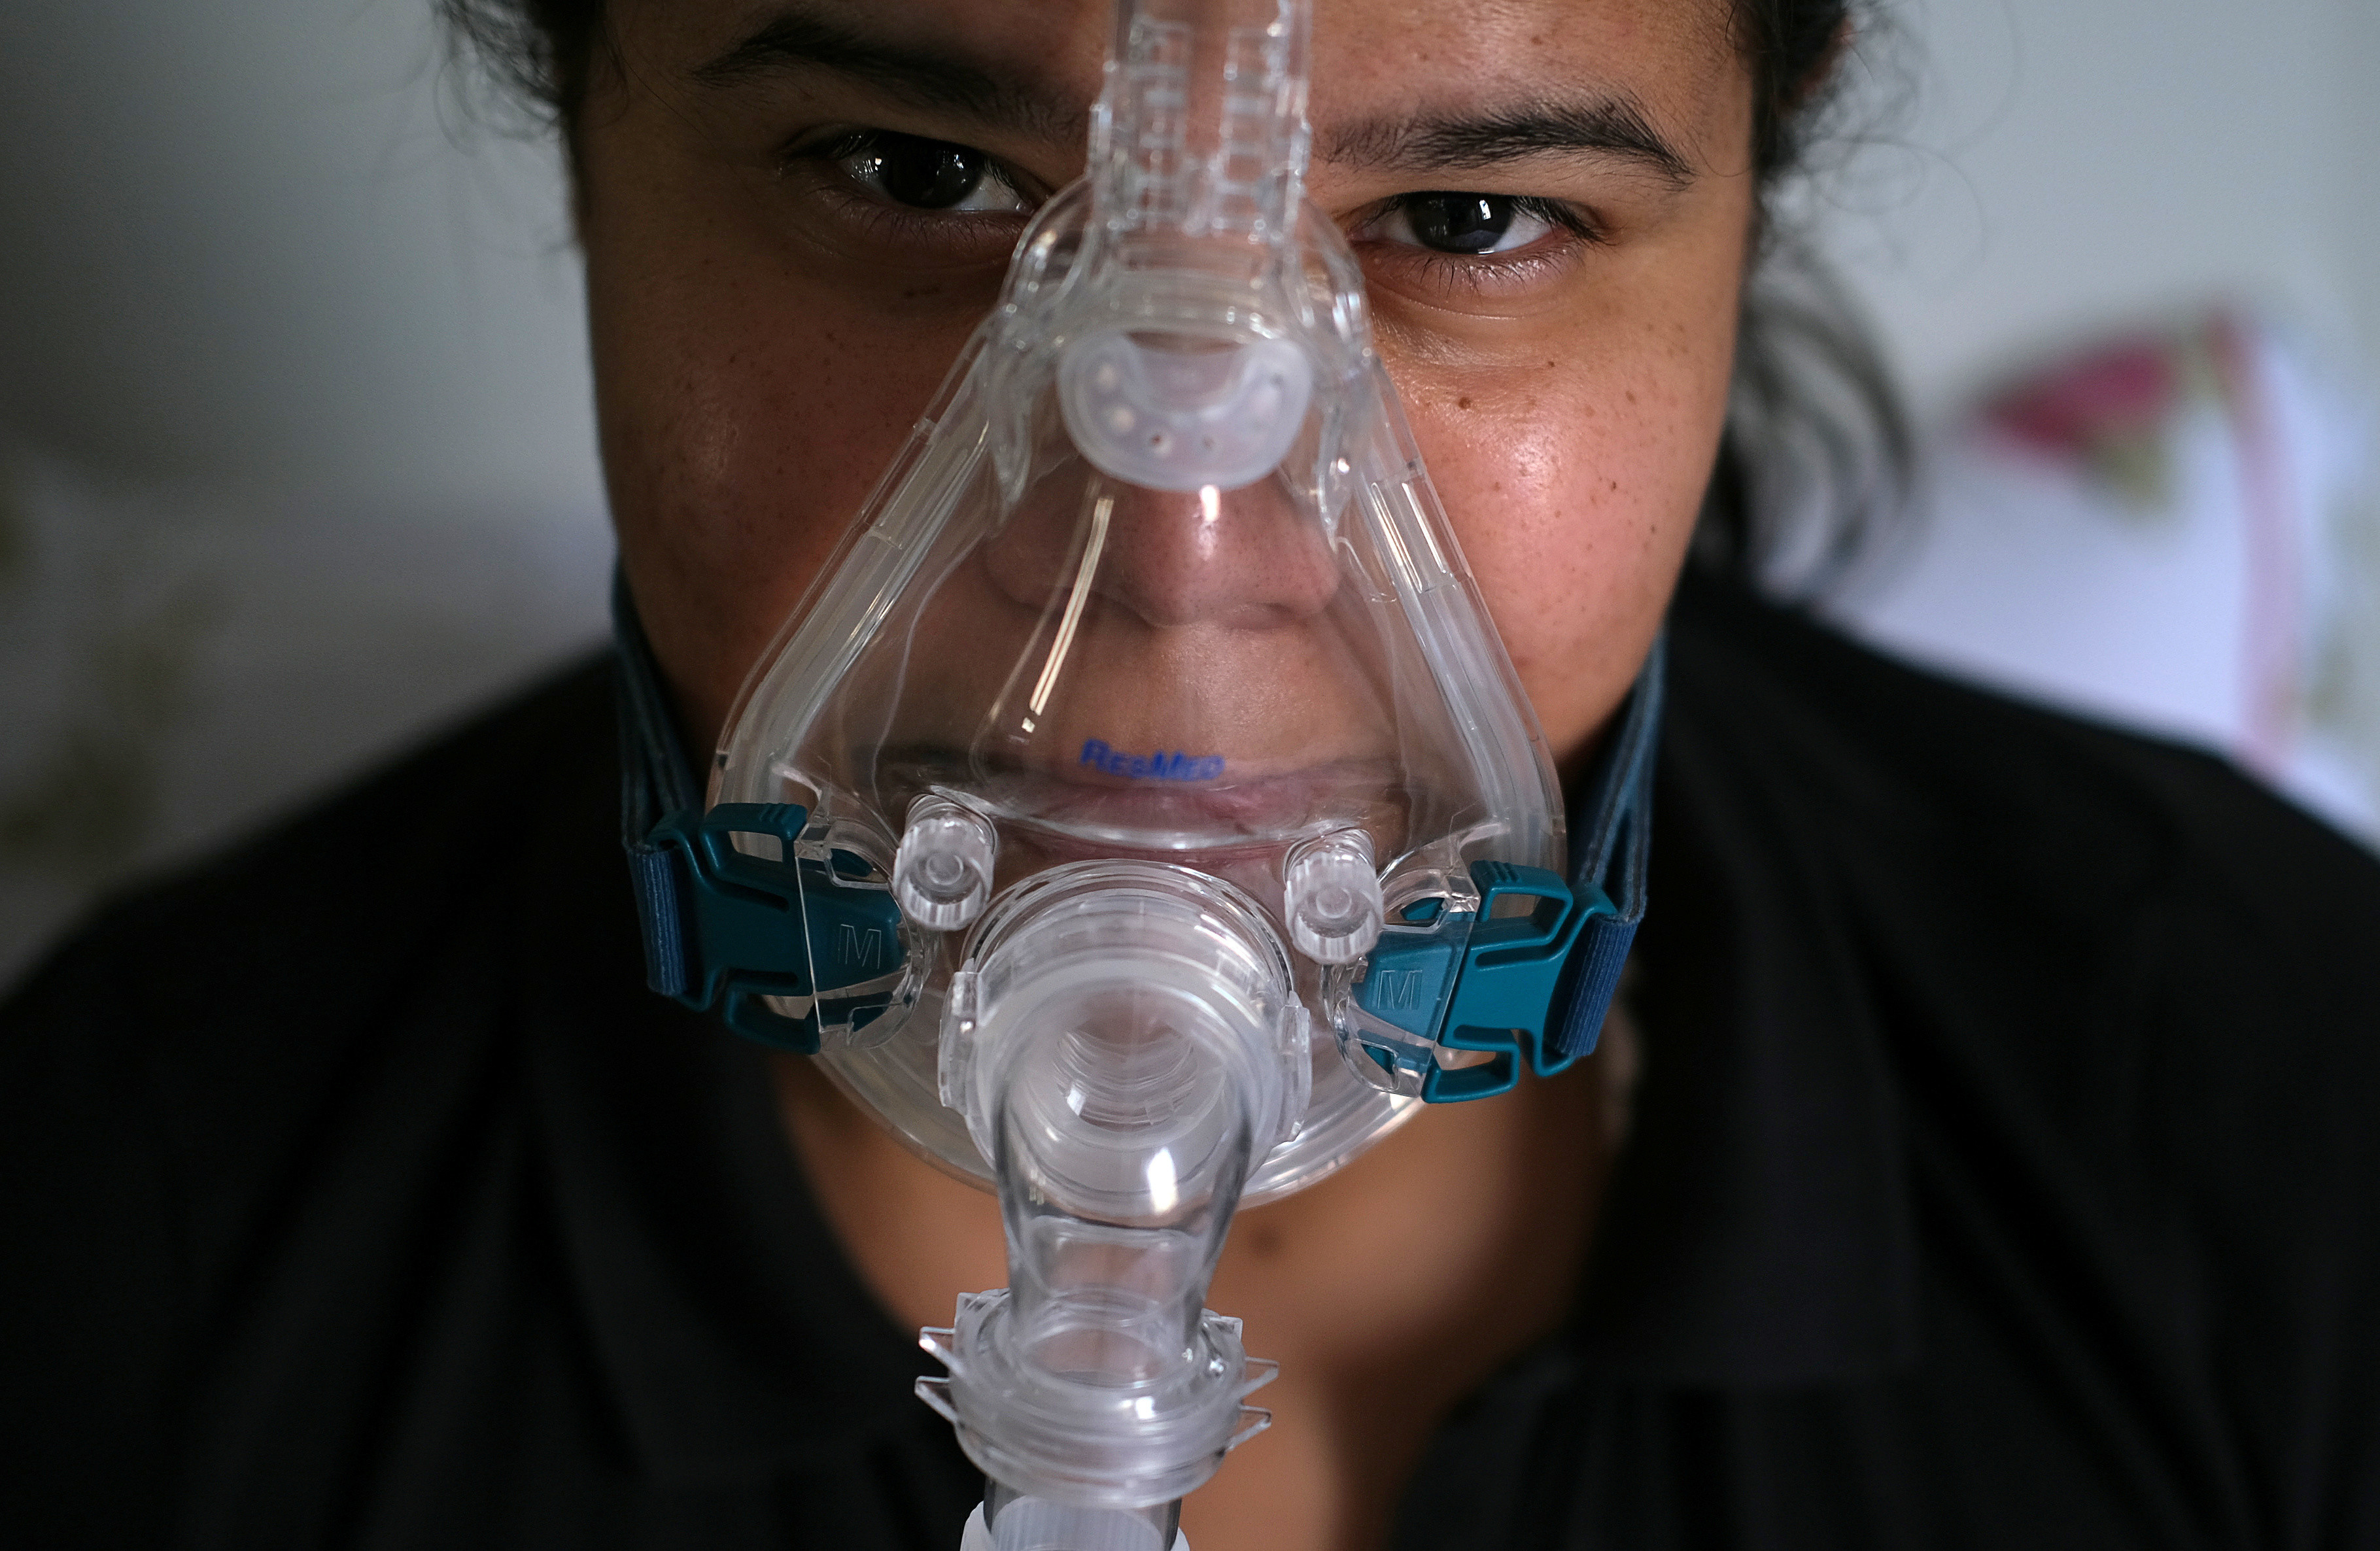 Physiotherapist Ana Carolina Xavier of FamilyCare, a group specialising in mobile physiotherapy care, and who also works at the ICU of Lagoa-Barra field hospital for COVID-19 patients, uses an oxygen machine during her treatment after being diagnosed with the coronavirus disease (COVID-19), at her house in Rio de Janeiro, Brazil June 25, 2020. Picture taken June 25, 2020. REUTERS/Ricardo Moraes - RC2T7I99DGDF